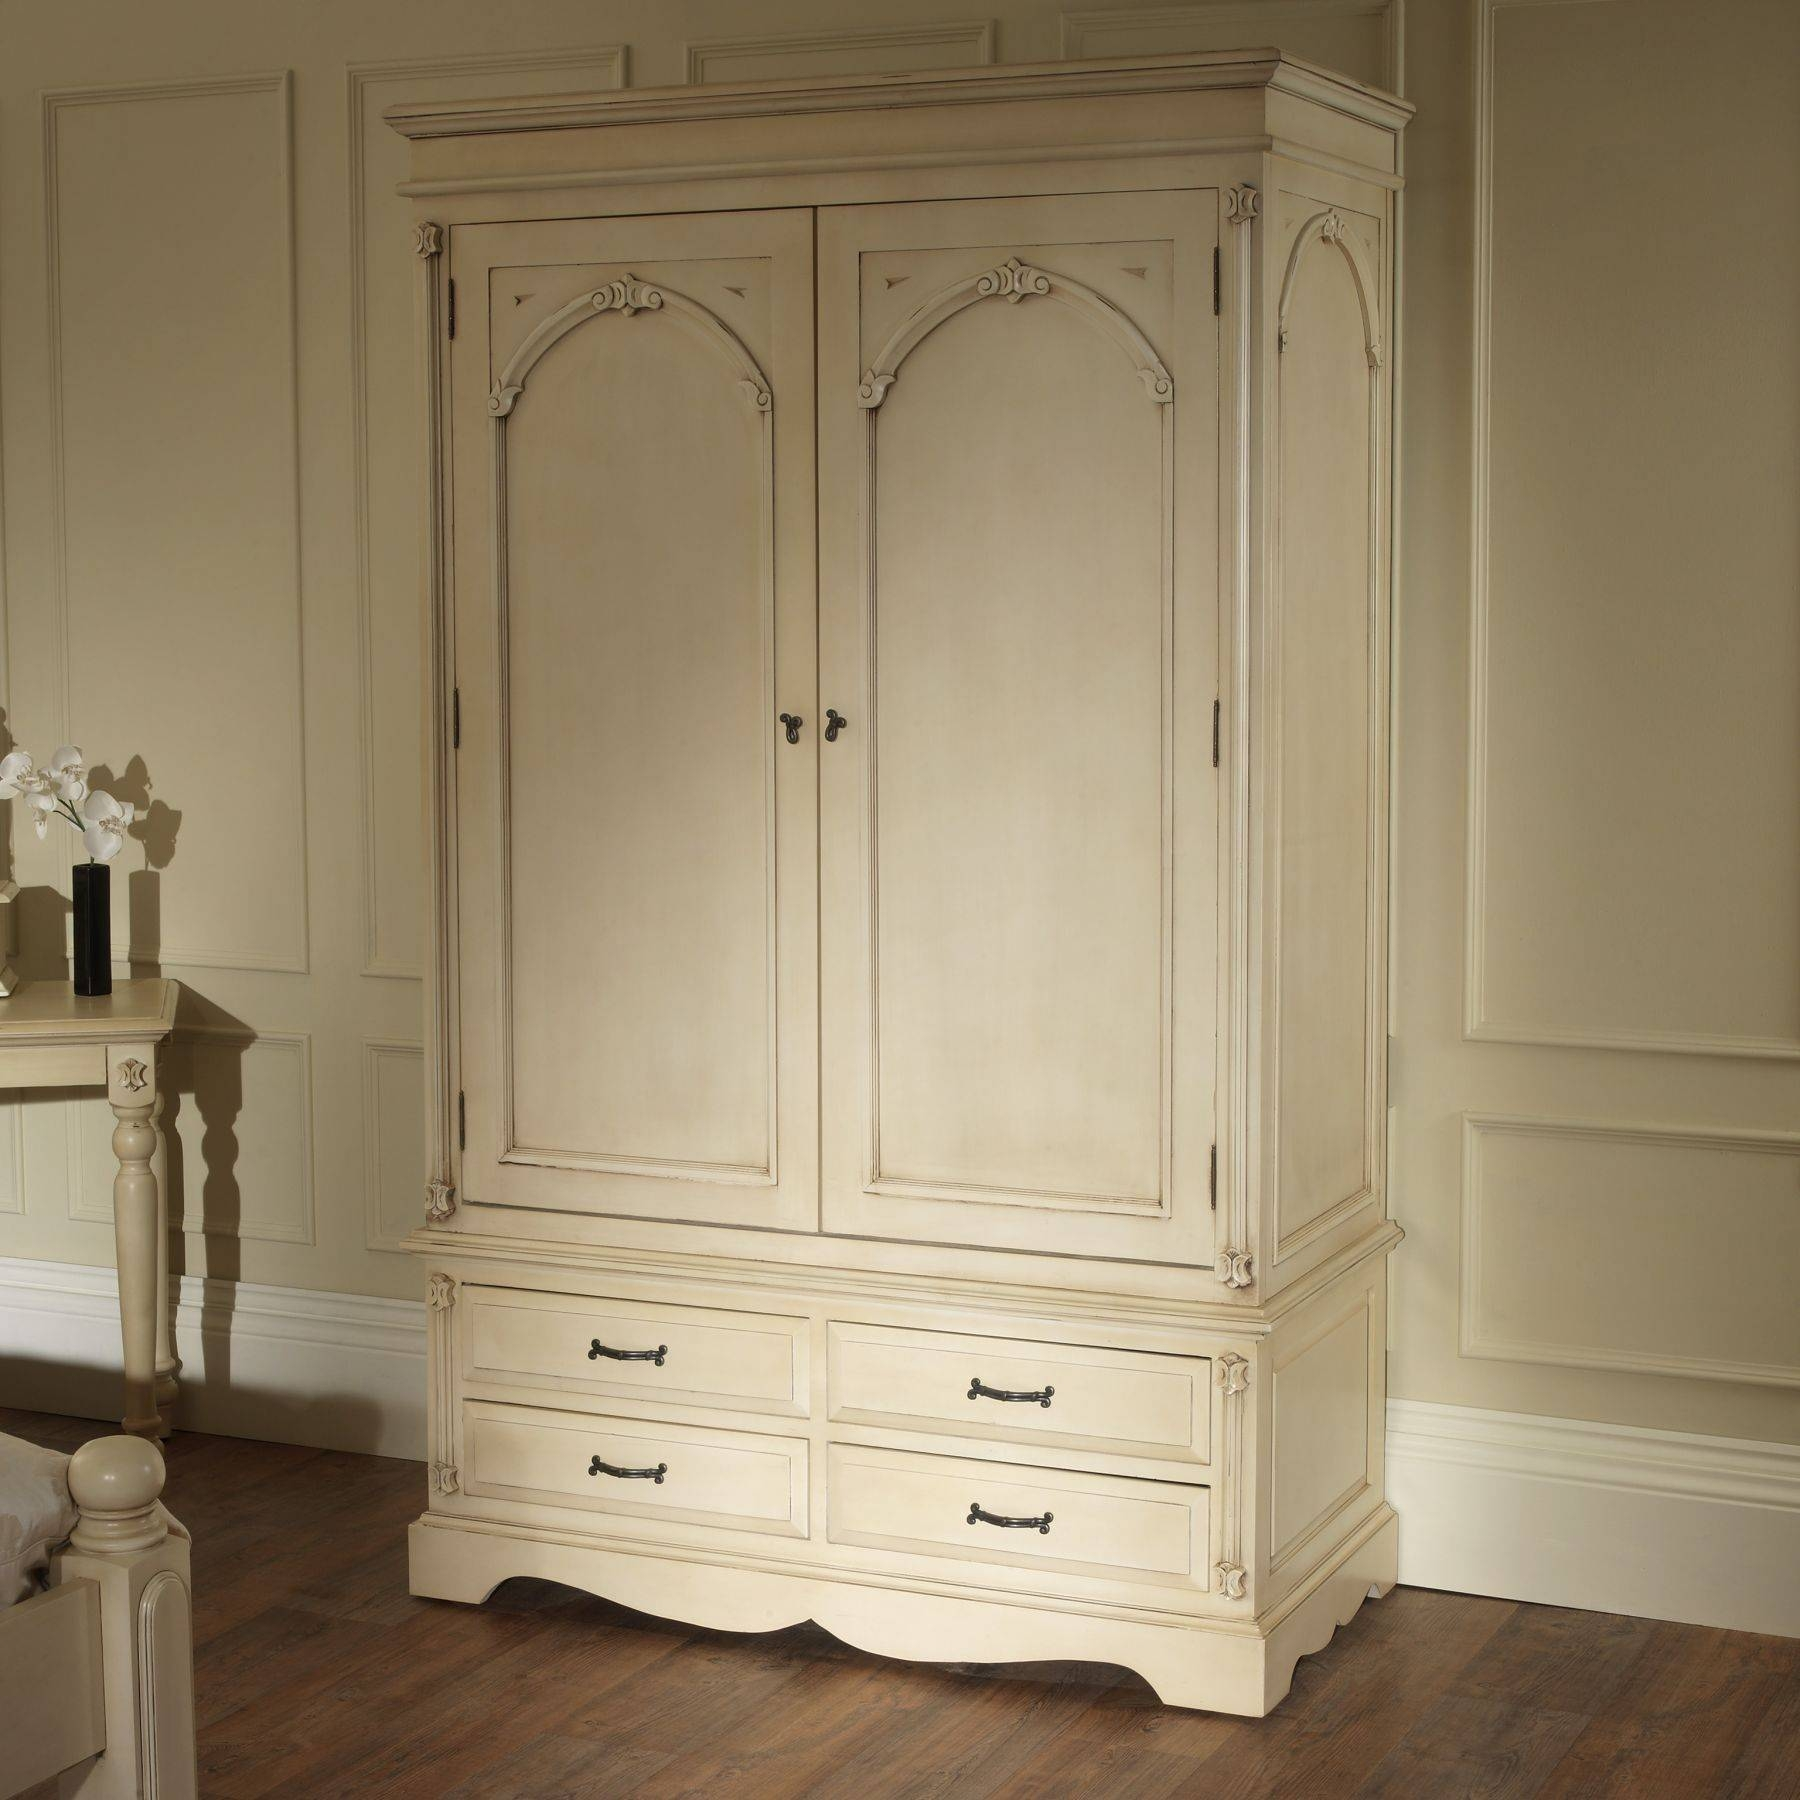 Victorian Antique French Wardrobe Works Well Alongside Our Shabby throughout French Wardrobes for Sale (Image 15 of 15)